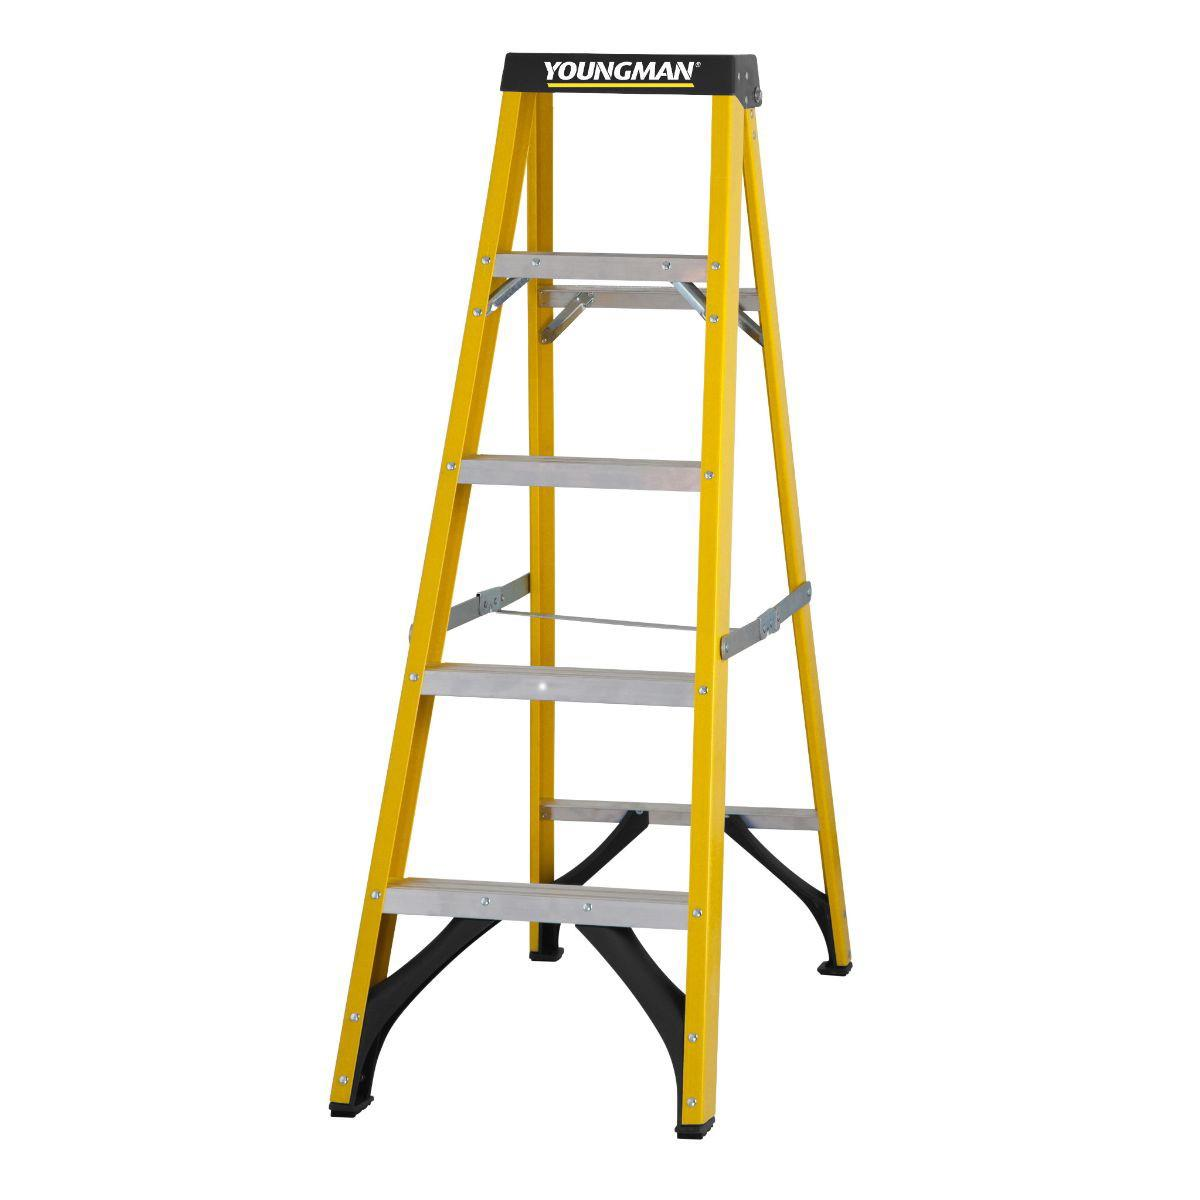 Youngman 52745518 S400 5 Tread; Glass Fibre Builders Step Ladder; EN131 2018; Safe Working Height 2317mm; Open Height 1400mm